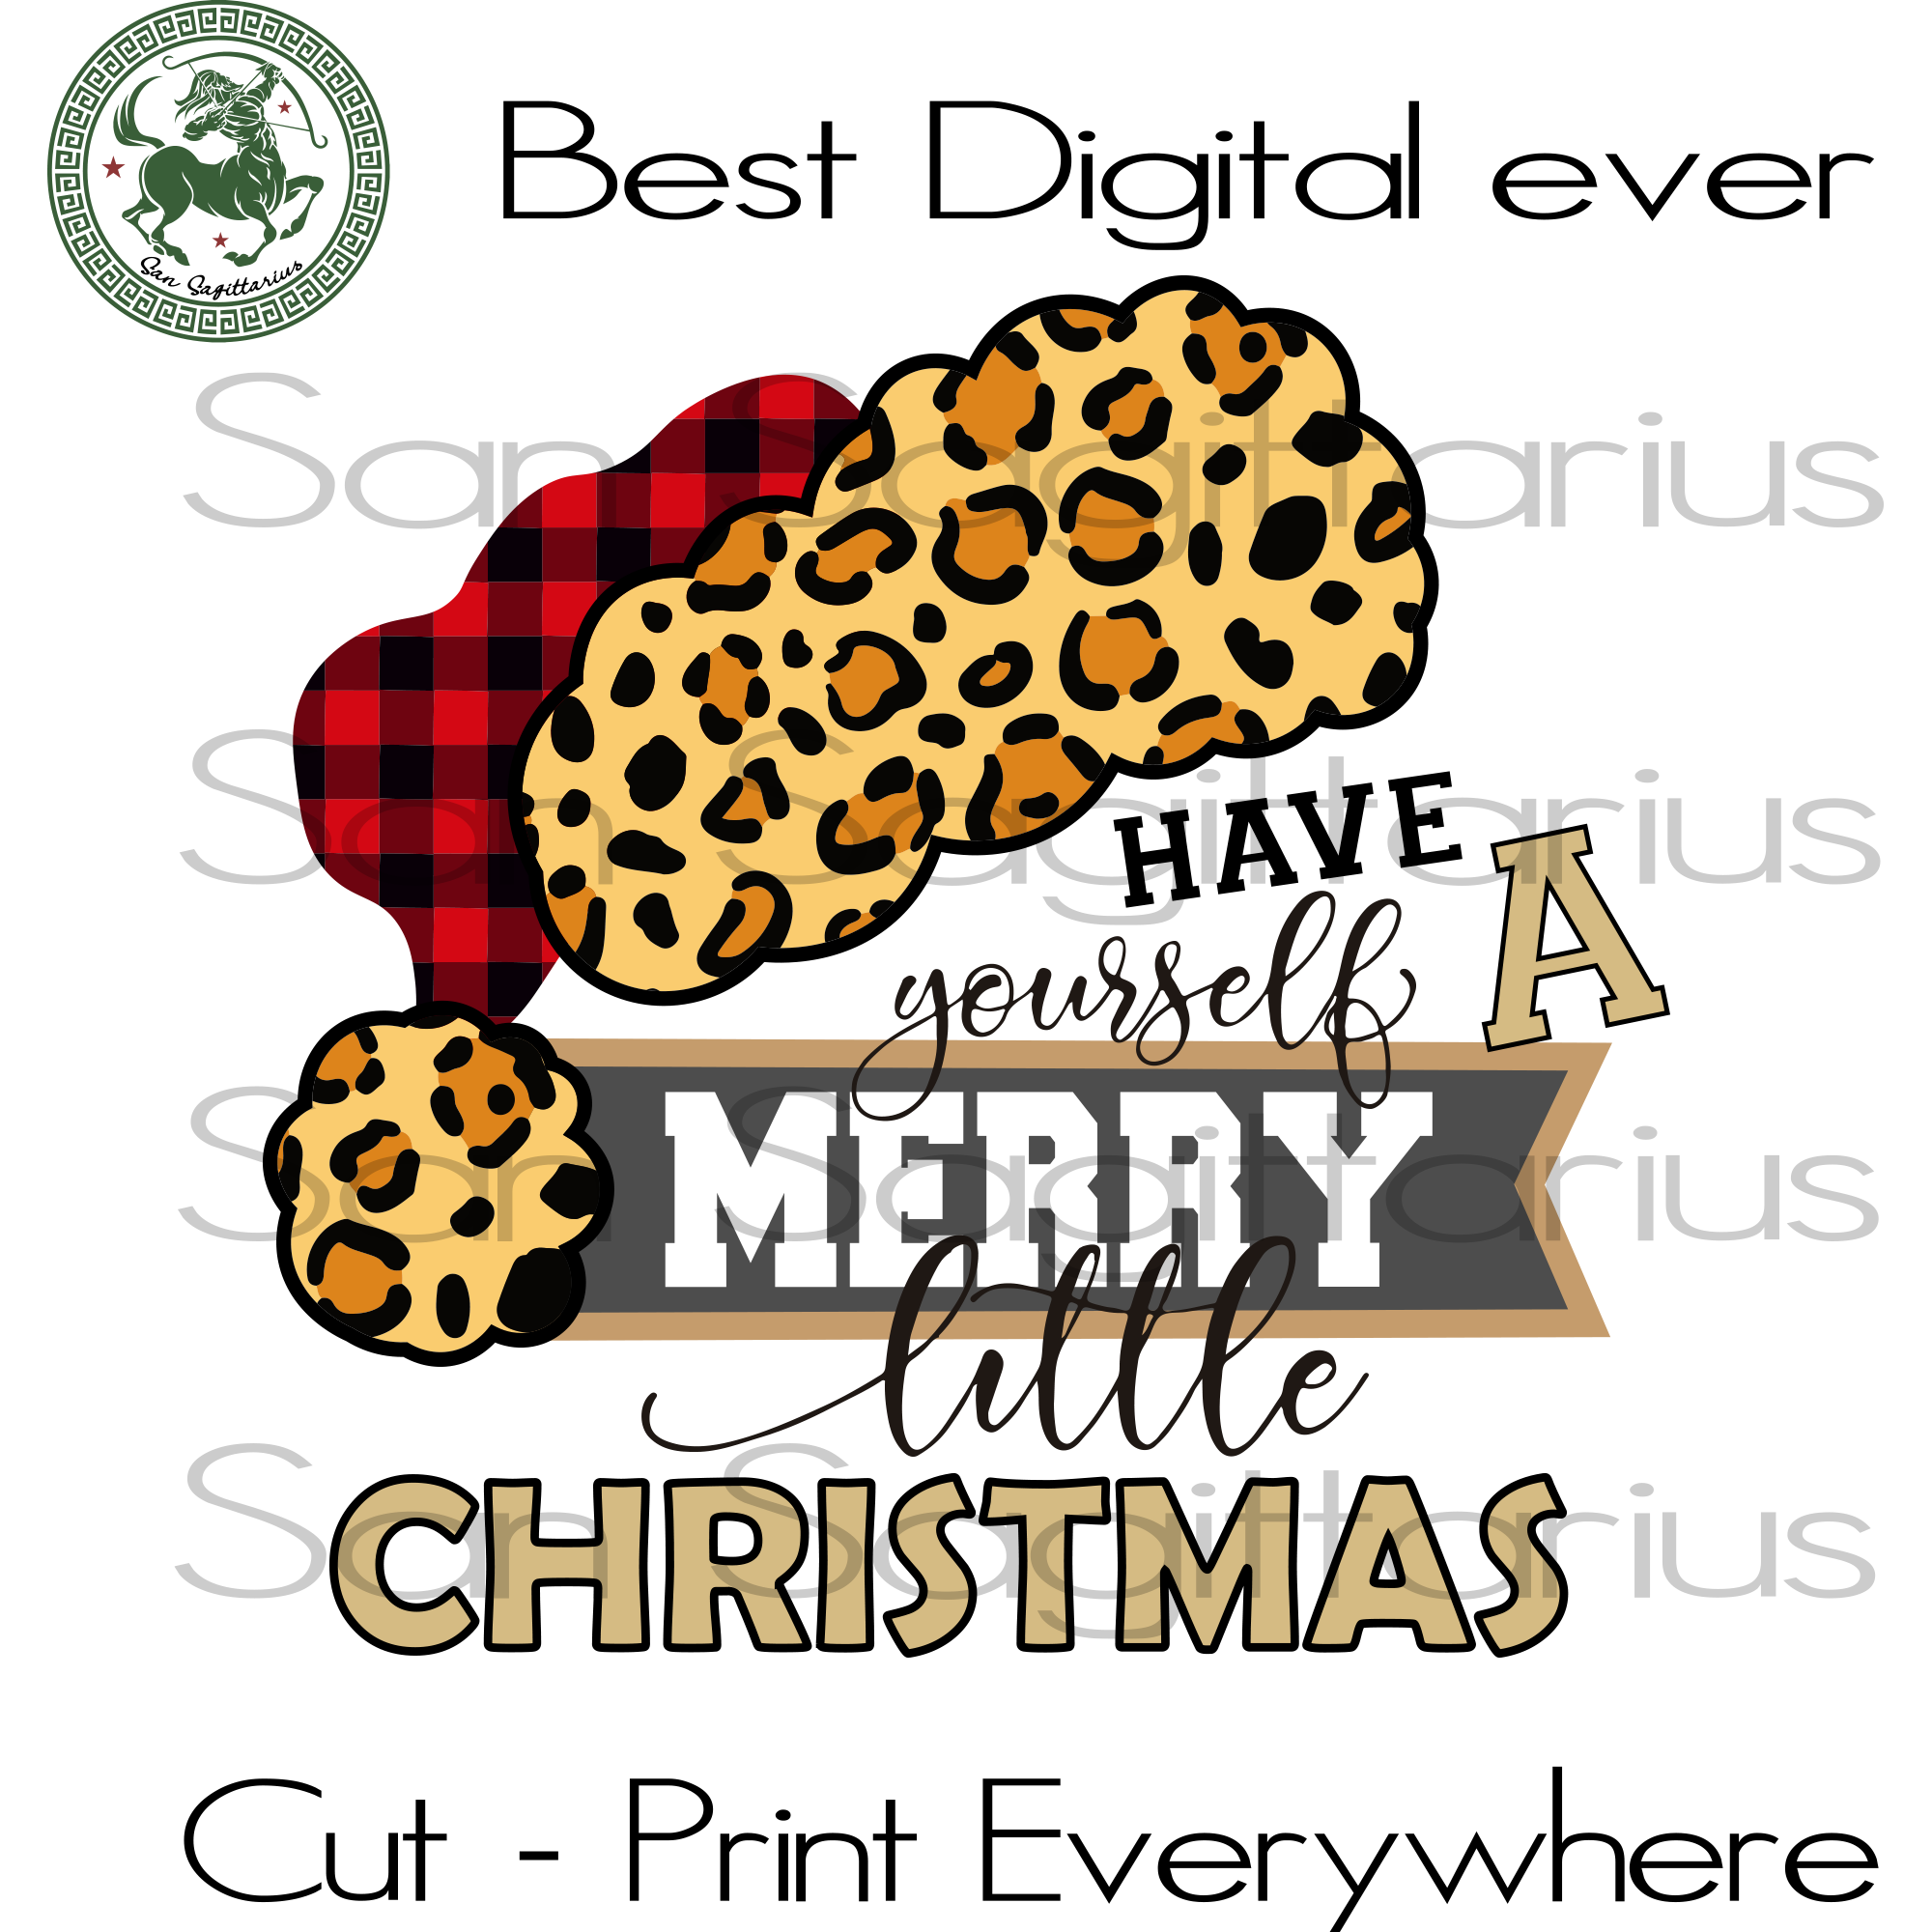 Have yourself a merry little christmas SVG Files For Silhouette, Cricut Files, SVG DXF EPS PNG Instant Download